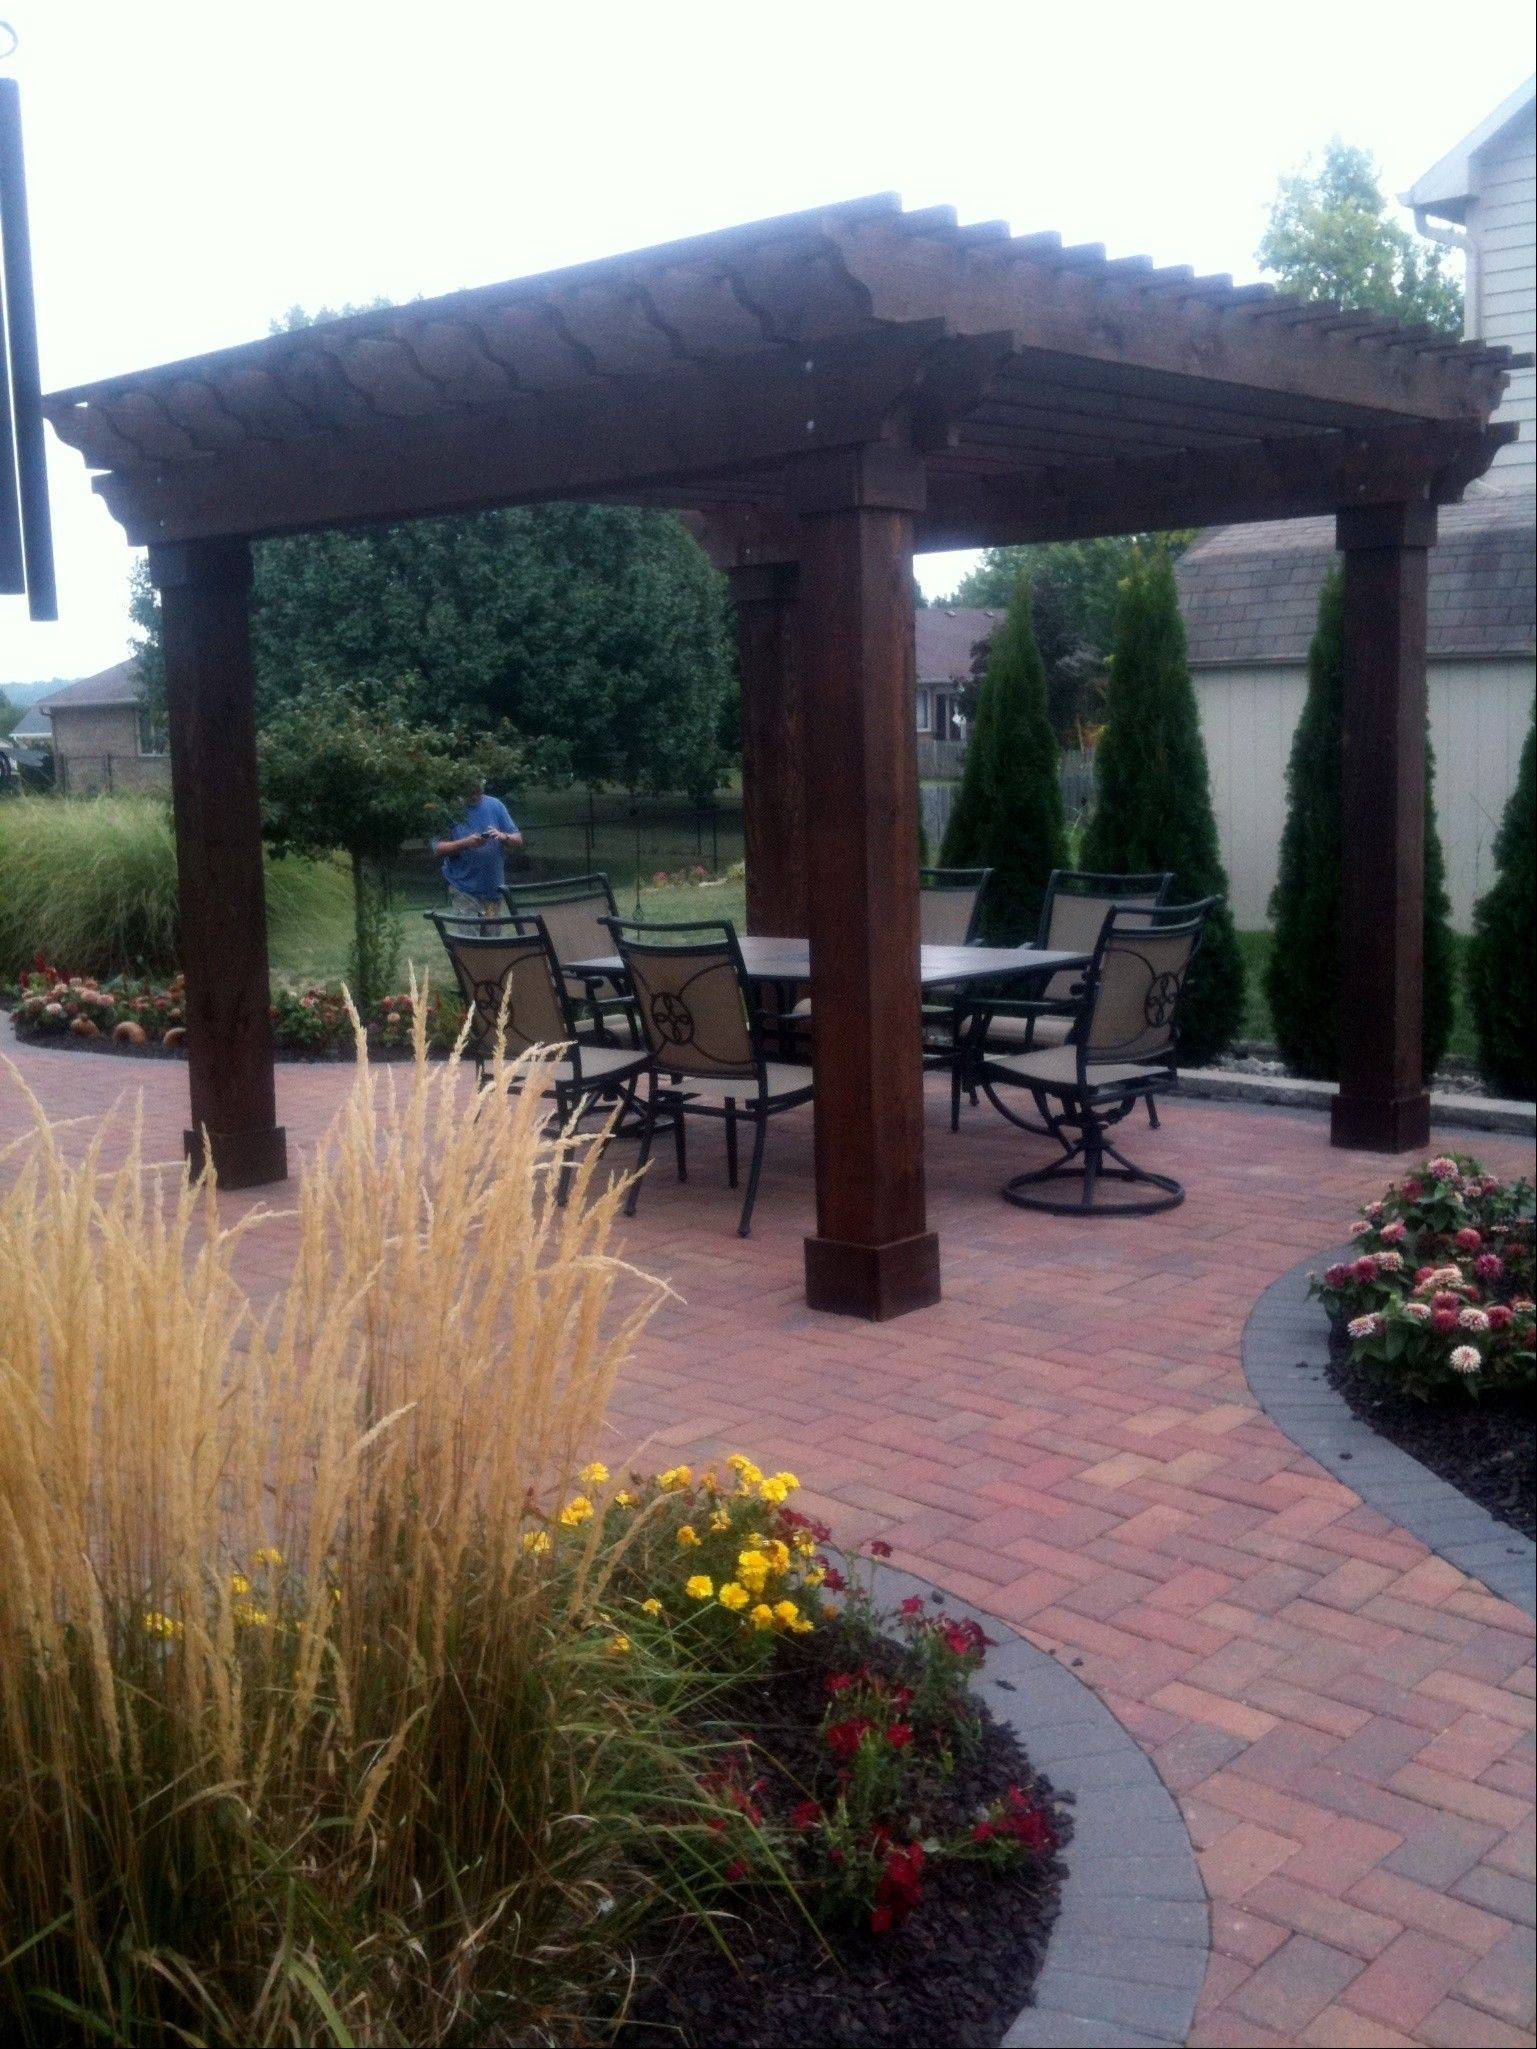 Pergolas have been popular in Europe for generations, and now are commonly seen in the Midwest.